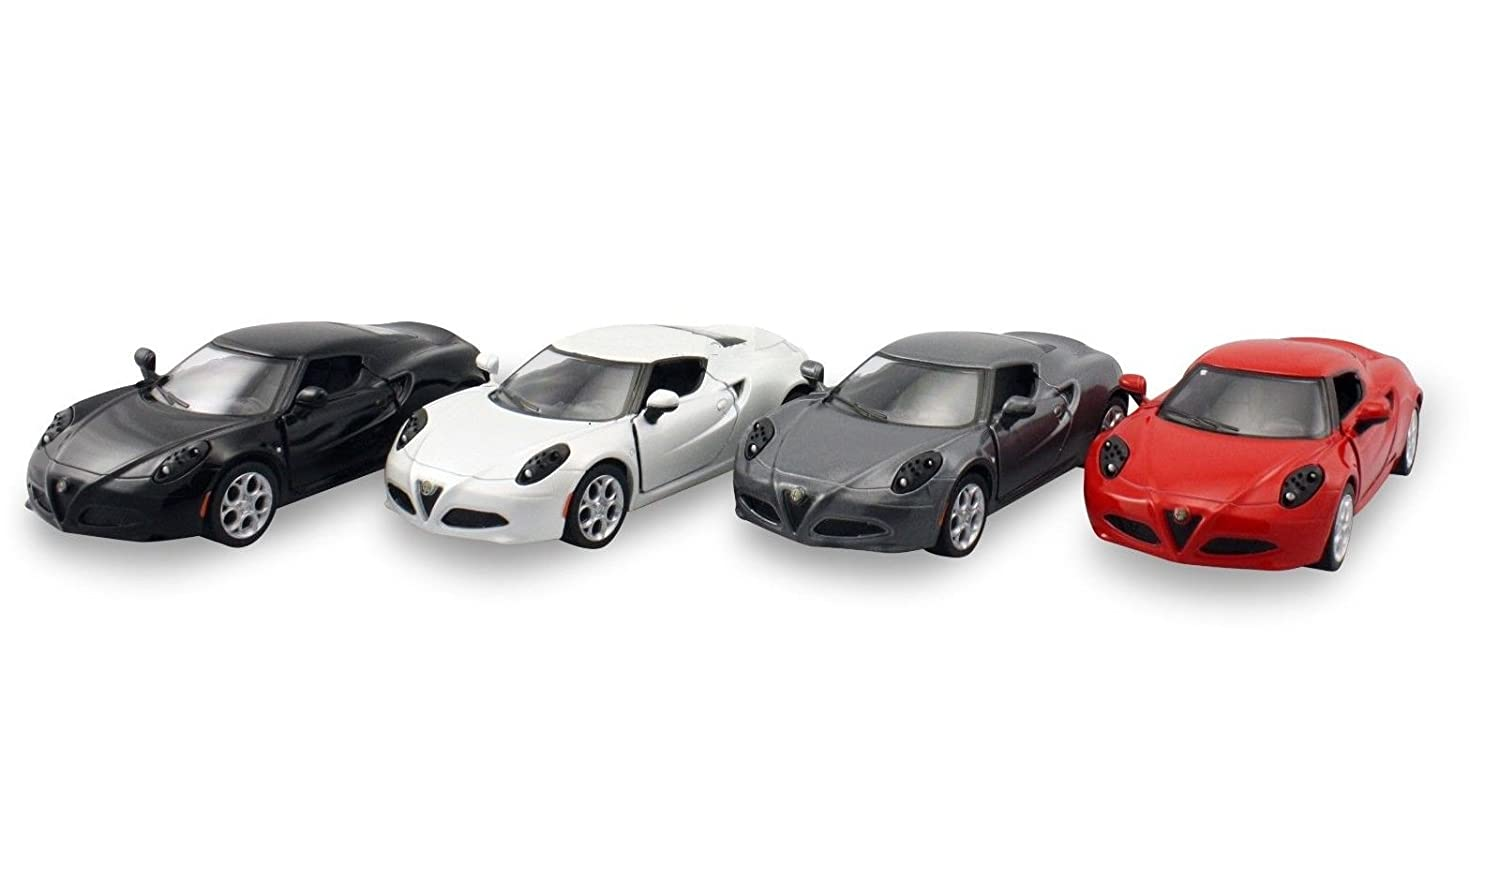 KiNSMART Set of 4: 2013 Alfa Romeo 4C 1: 32 Scale (Red, Black, Gray, White) Toy, Multicolor